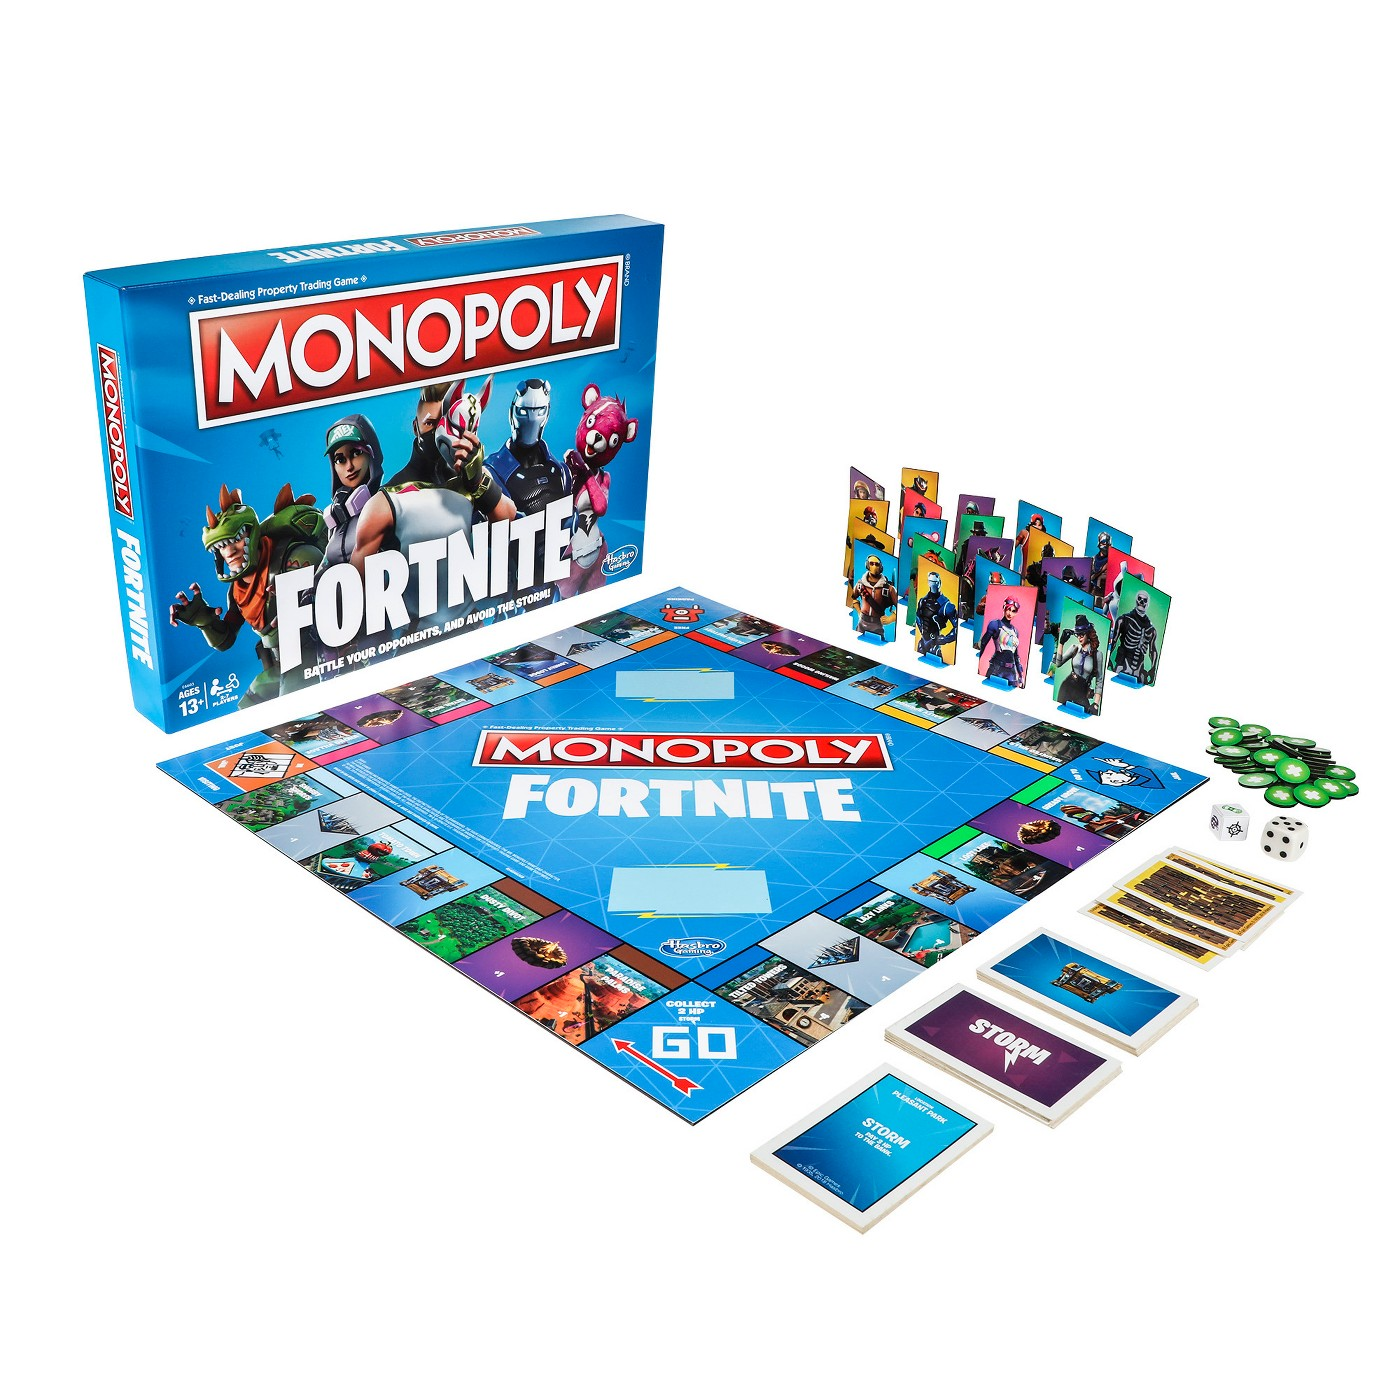 Monopoly Fortnite Board Game - image 1 of 6